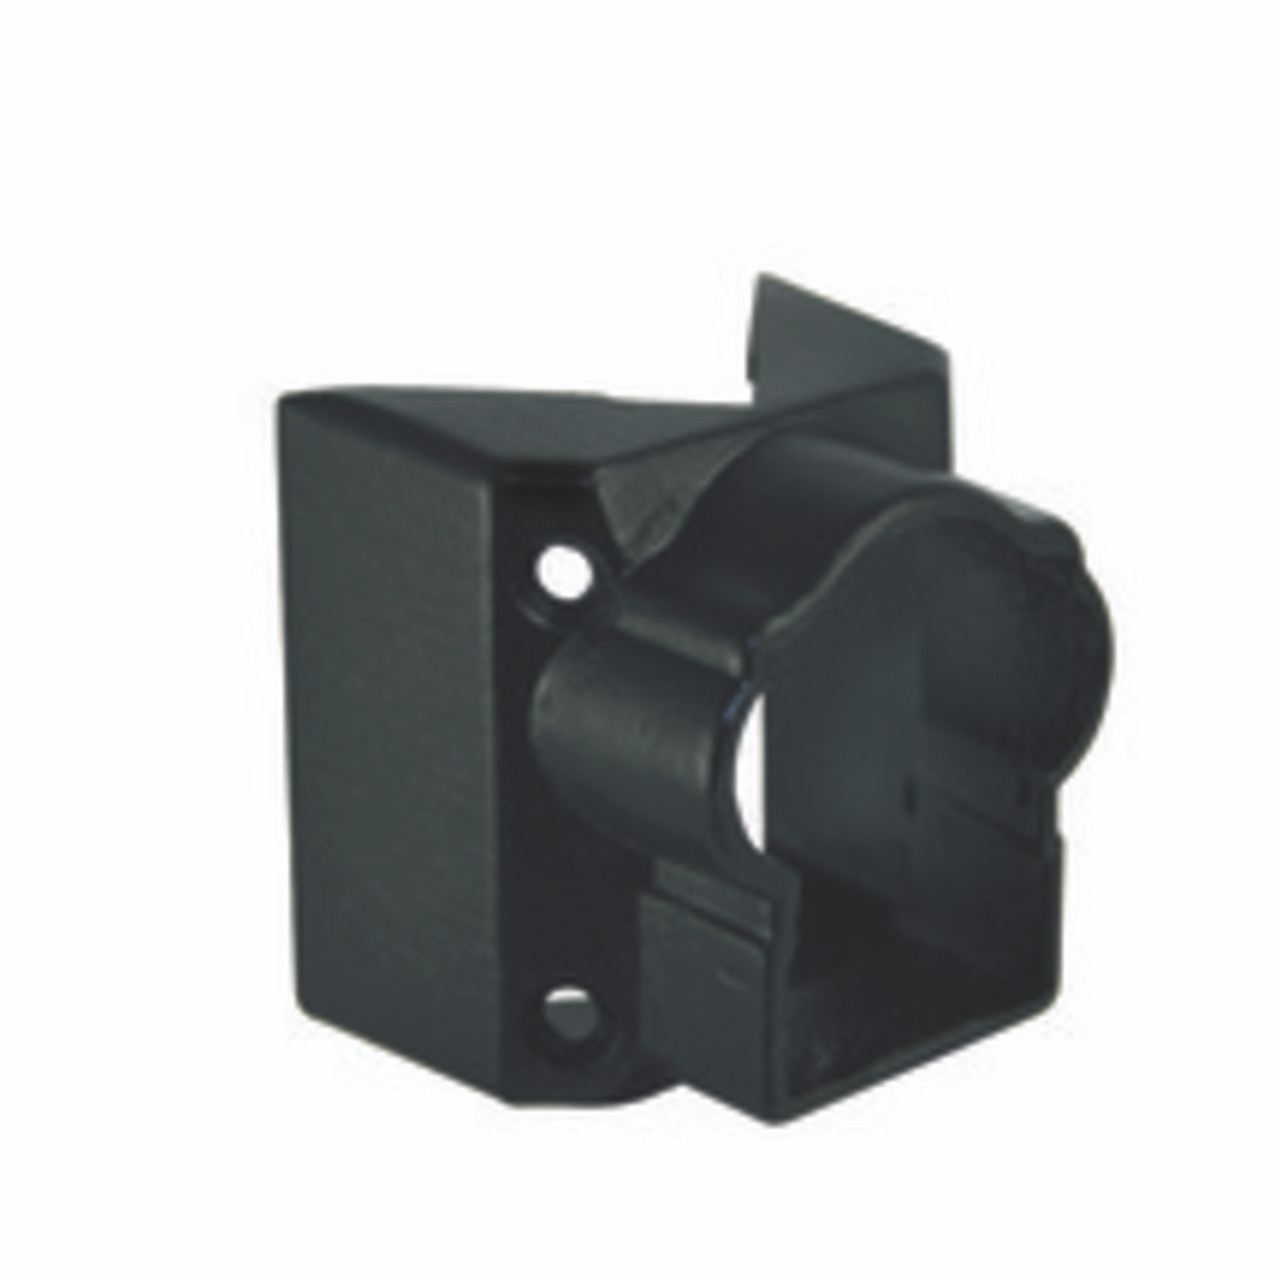 Key-Link Arabian Series 45-Degree Angle Adapter Top Bracket - Black